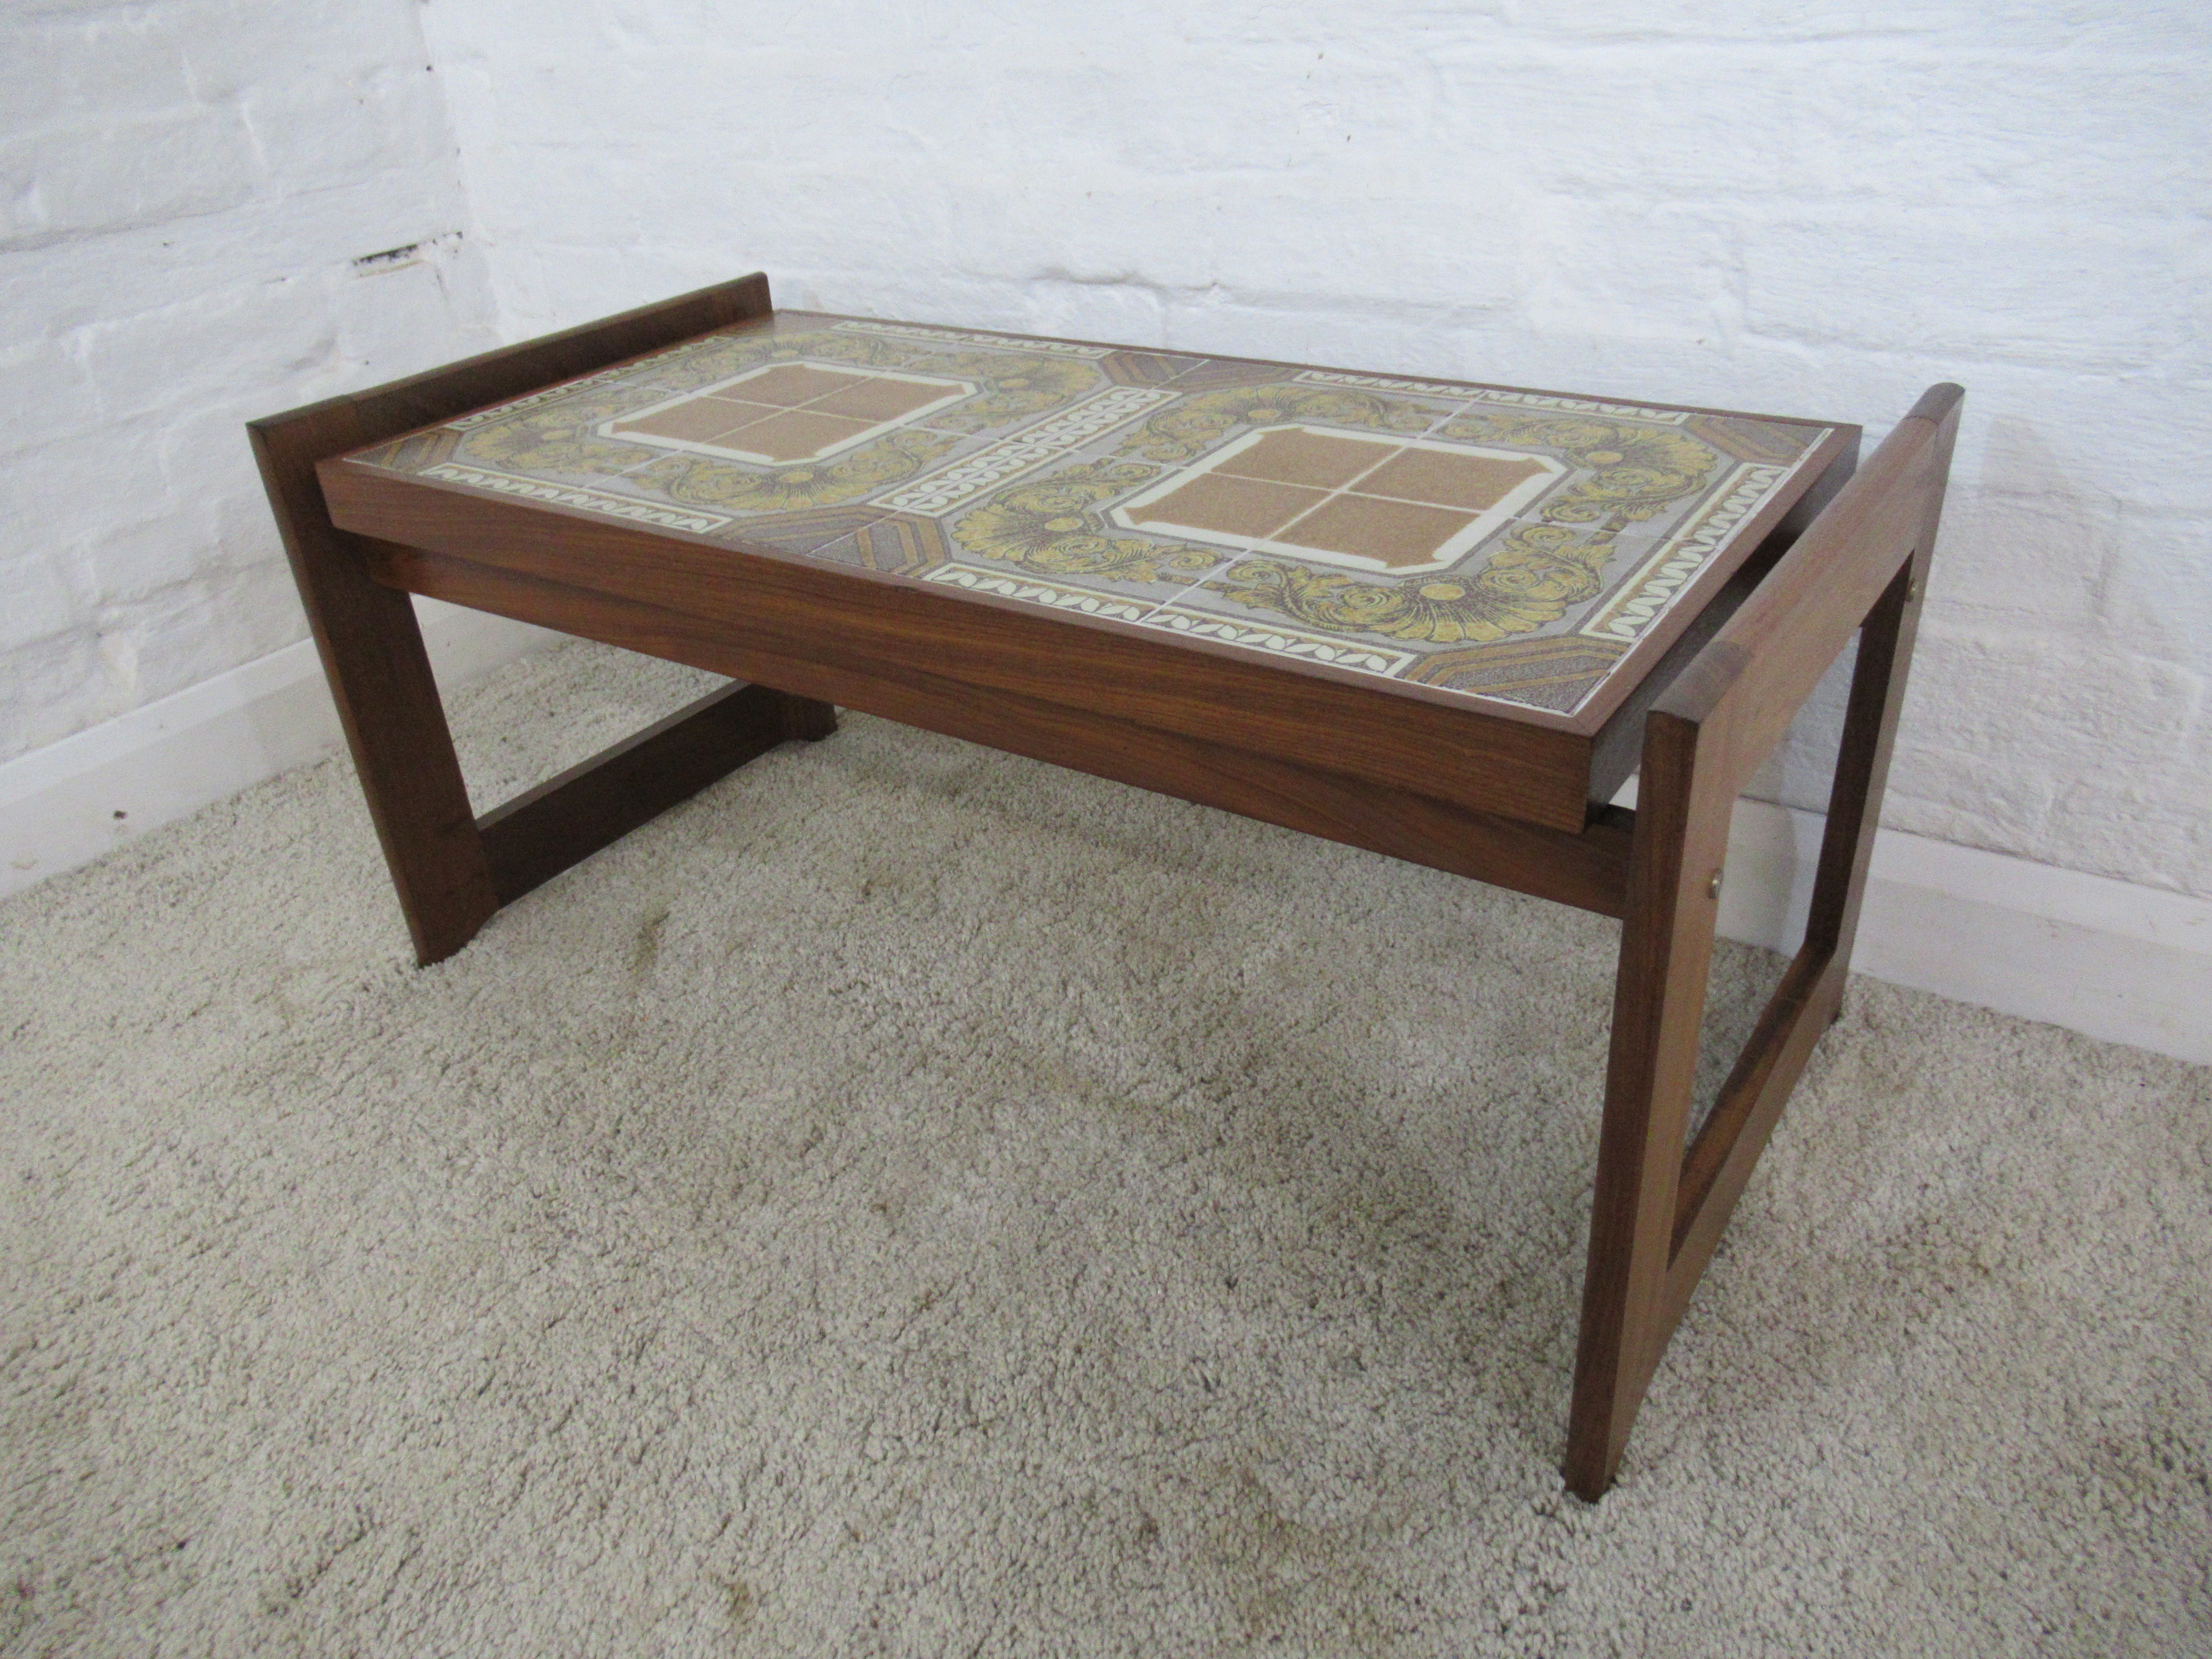 retro 1960s 1970s rectangular teak and tile floating top coffee table